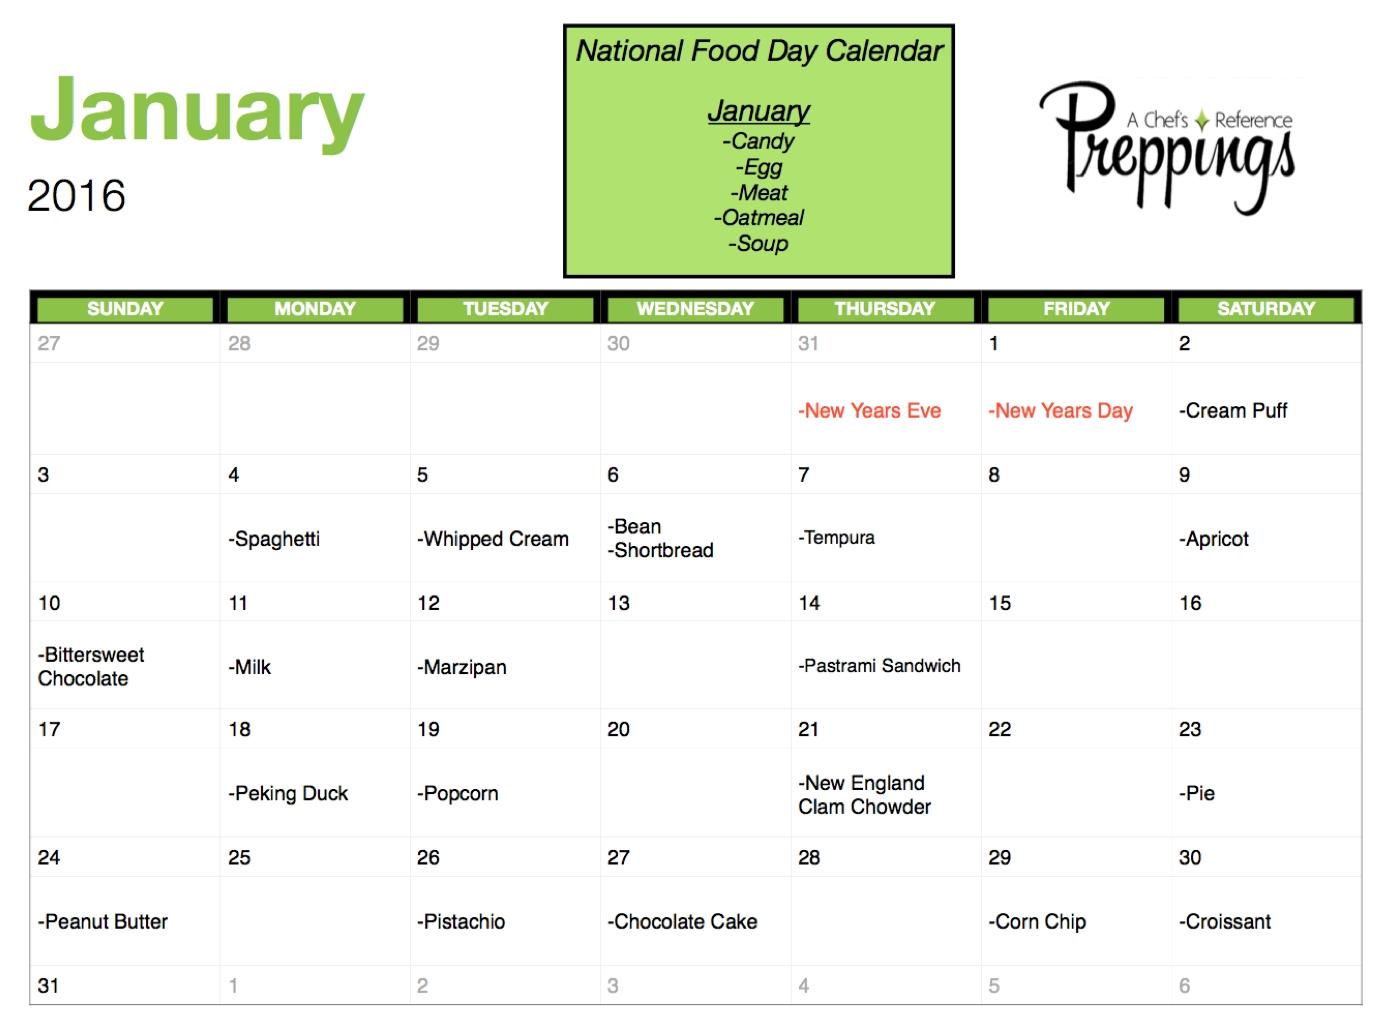 National Food Days- January 2016 - Preppings-Calendar Of National Food Holidays